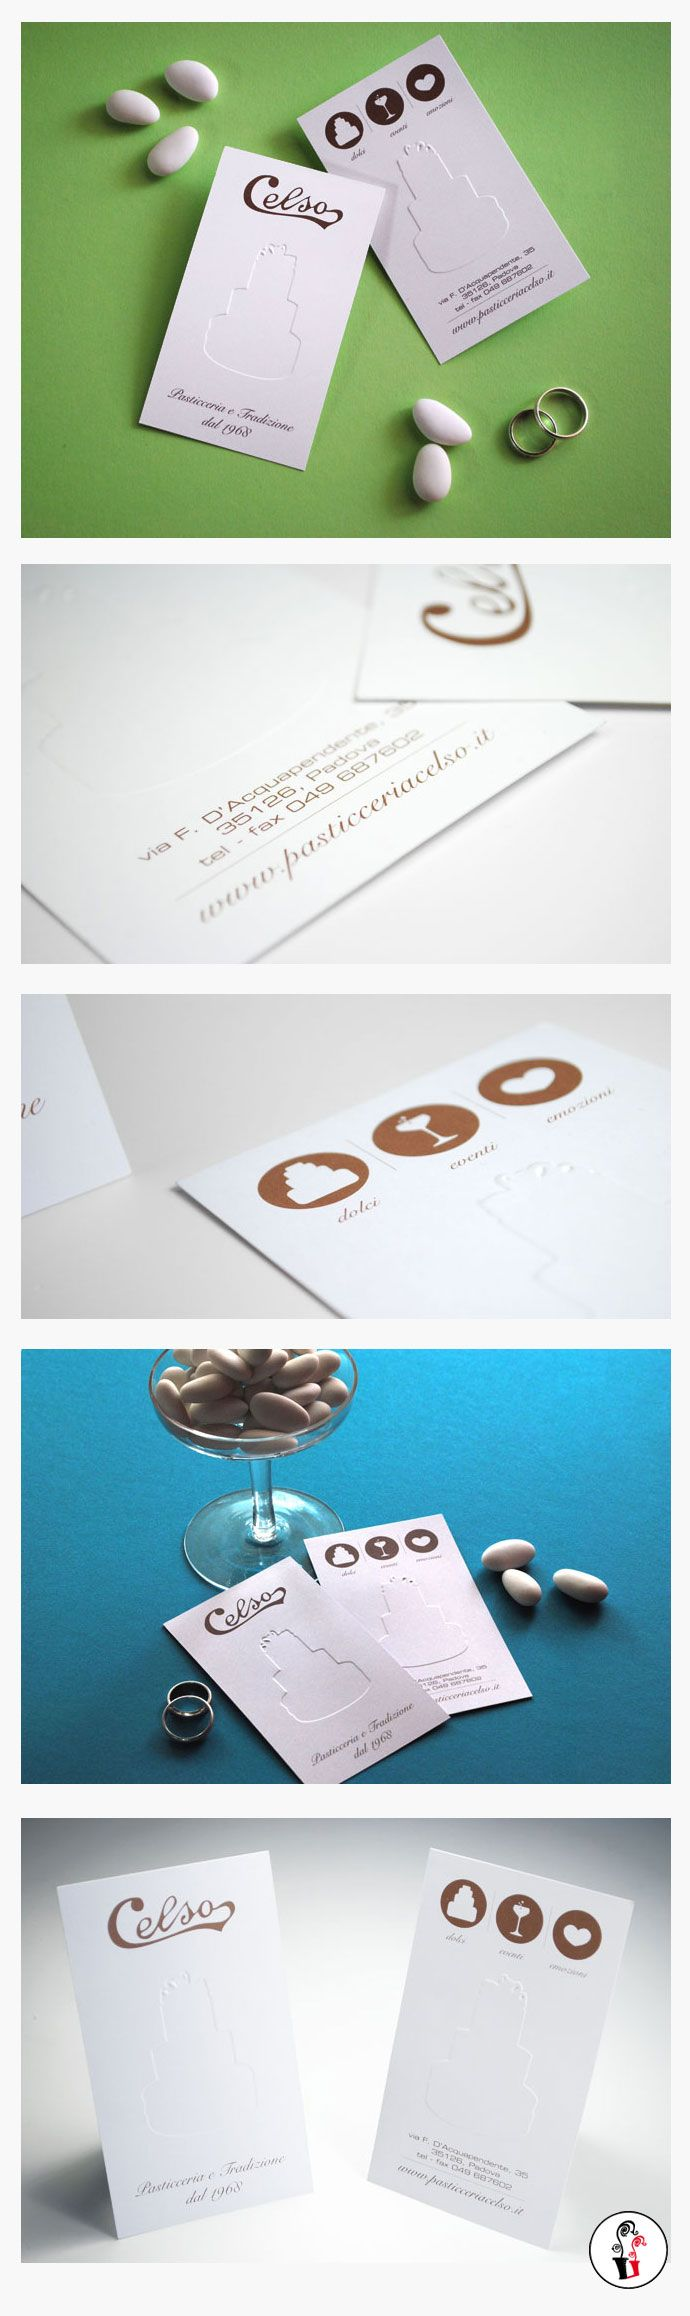 Corporate Identity - Pasticceria Celso - #embossing